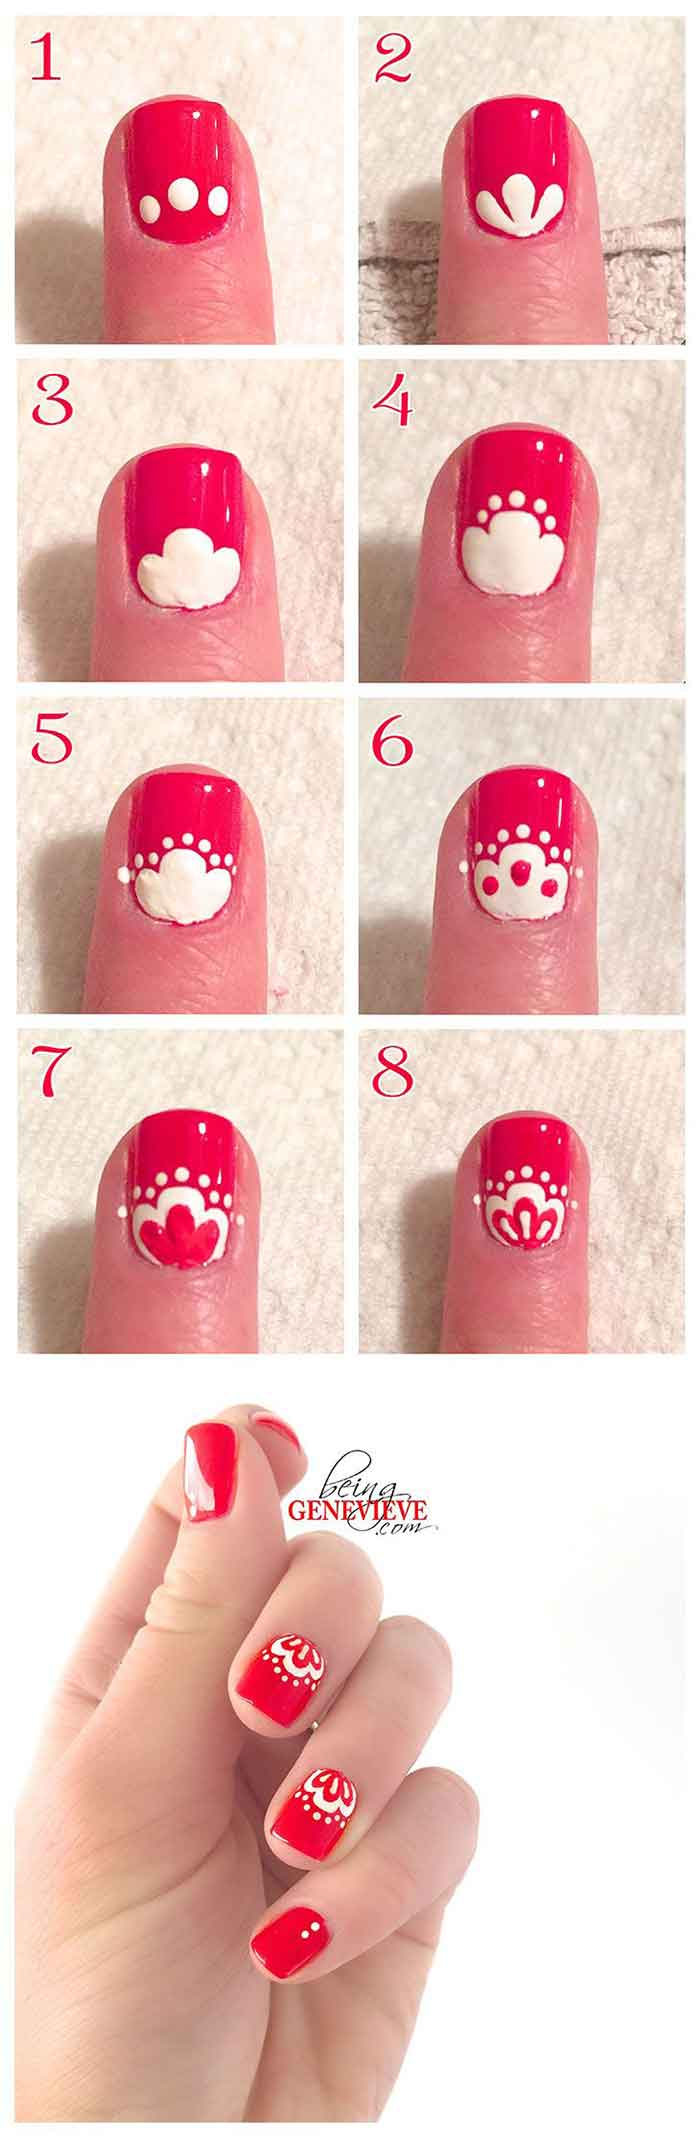 16. Oriental Red Nails Tutorial For Beginners